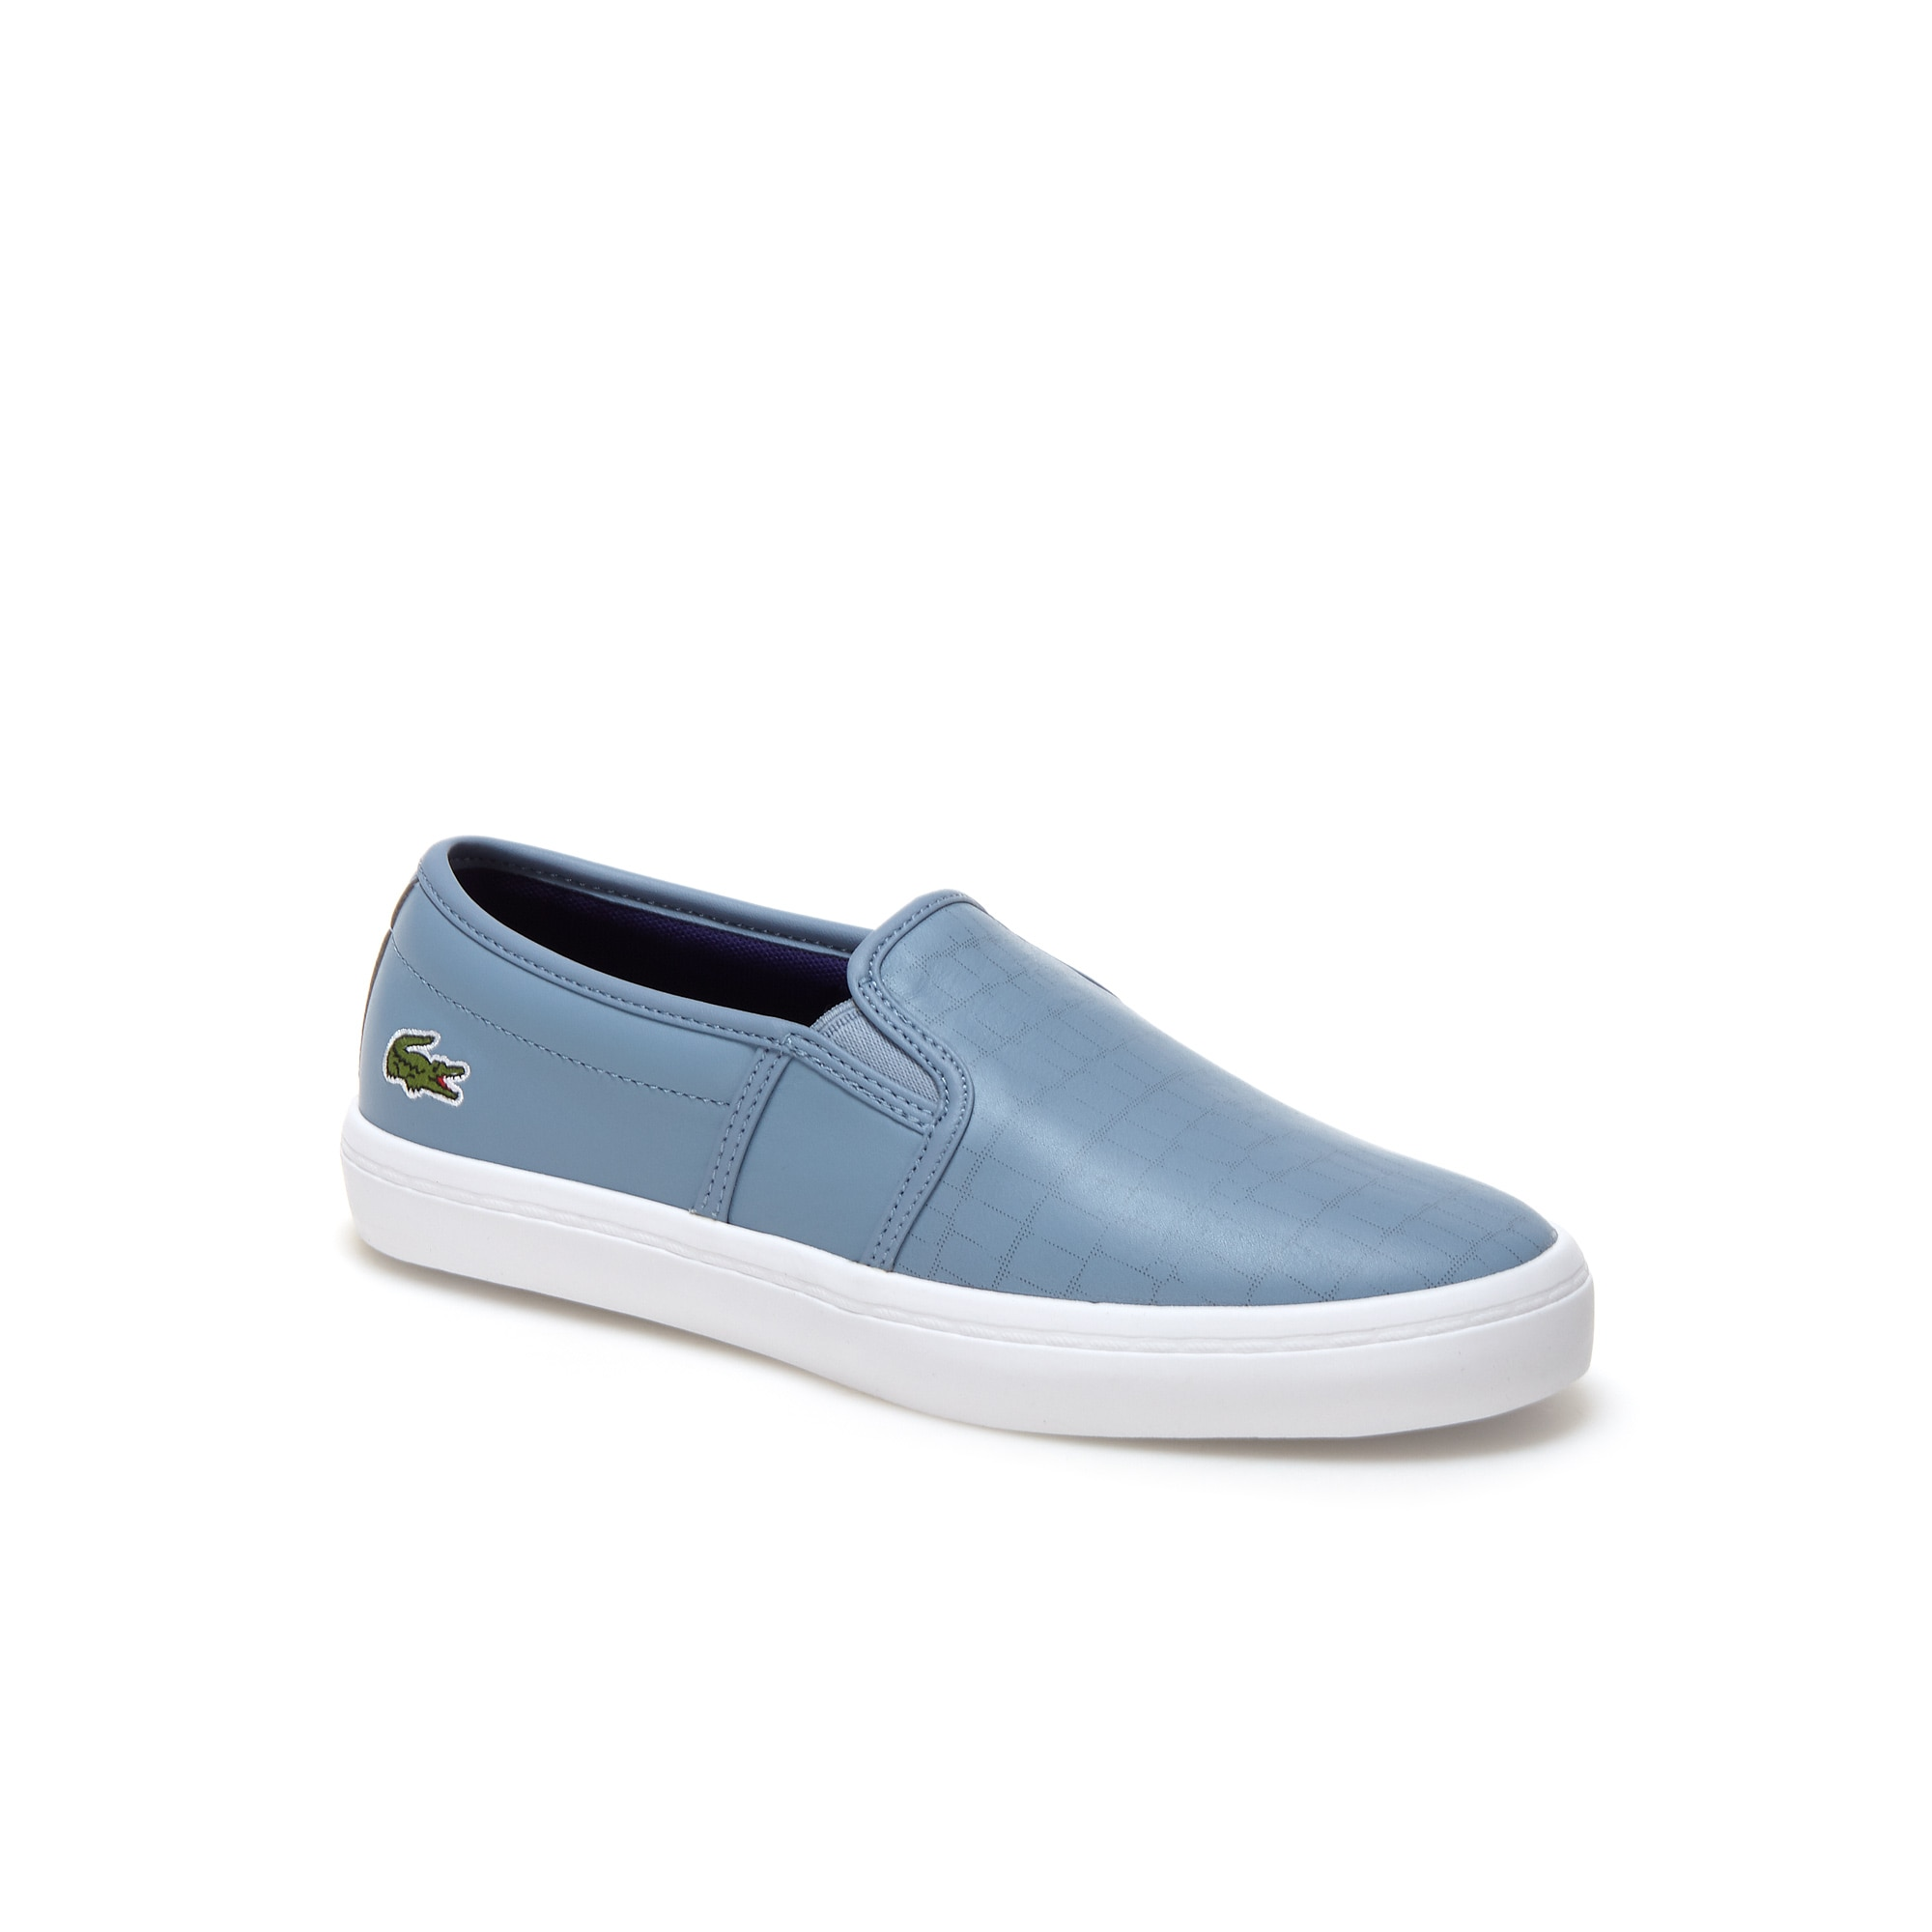 Women's Gazon Leather Slip-ons